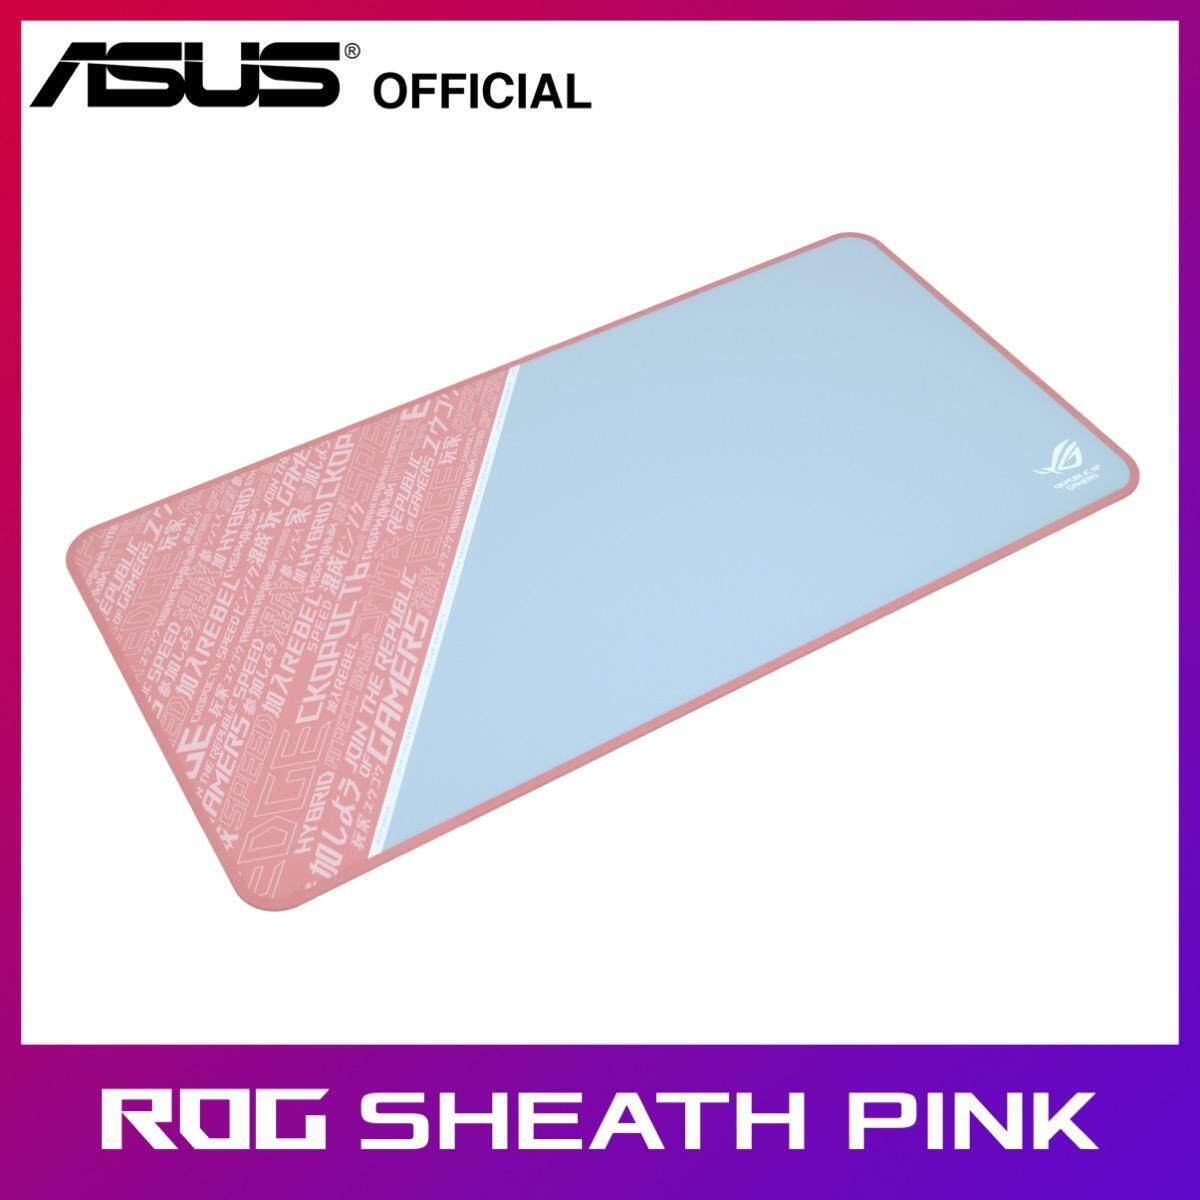 ASUS ROG Sheath Pink Mouse Pad Limited Edition PNK LTD Malaysia